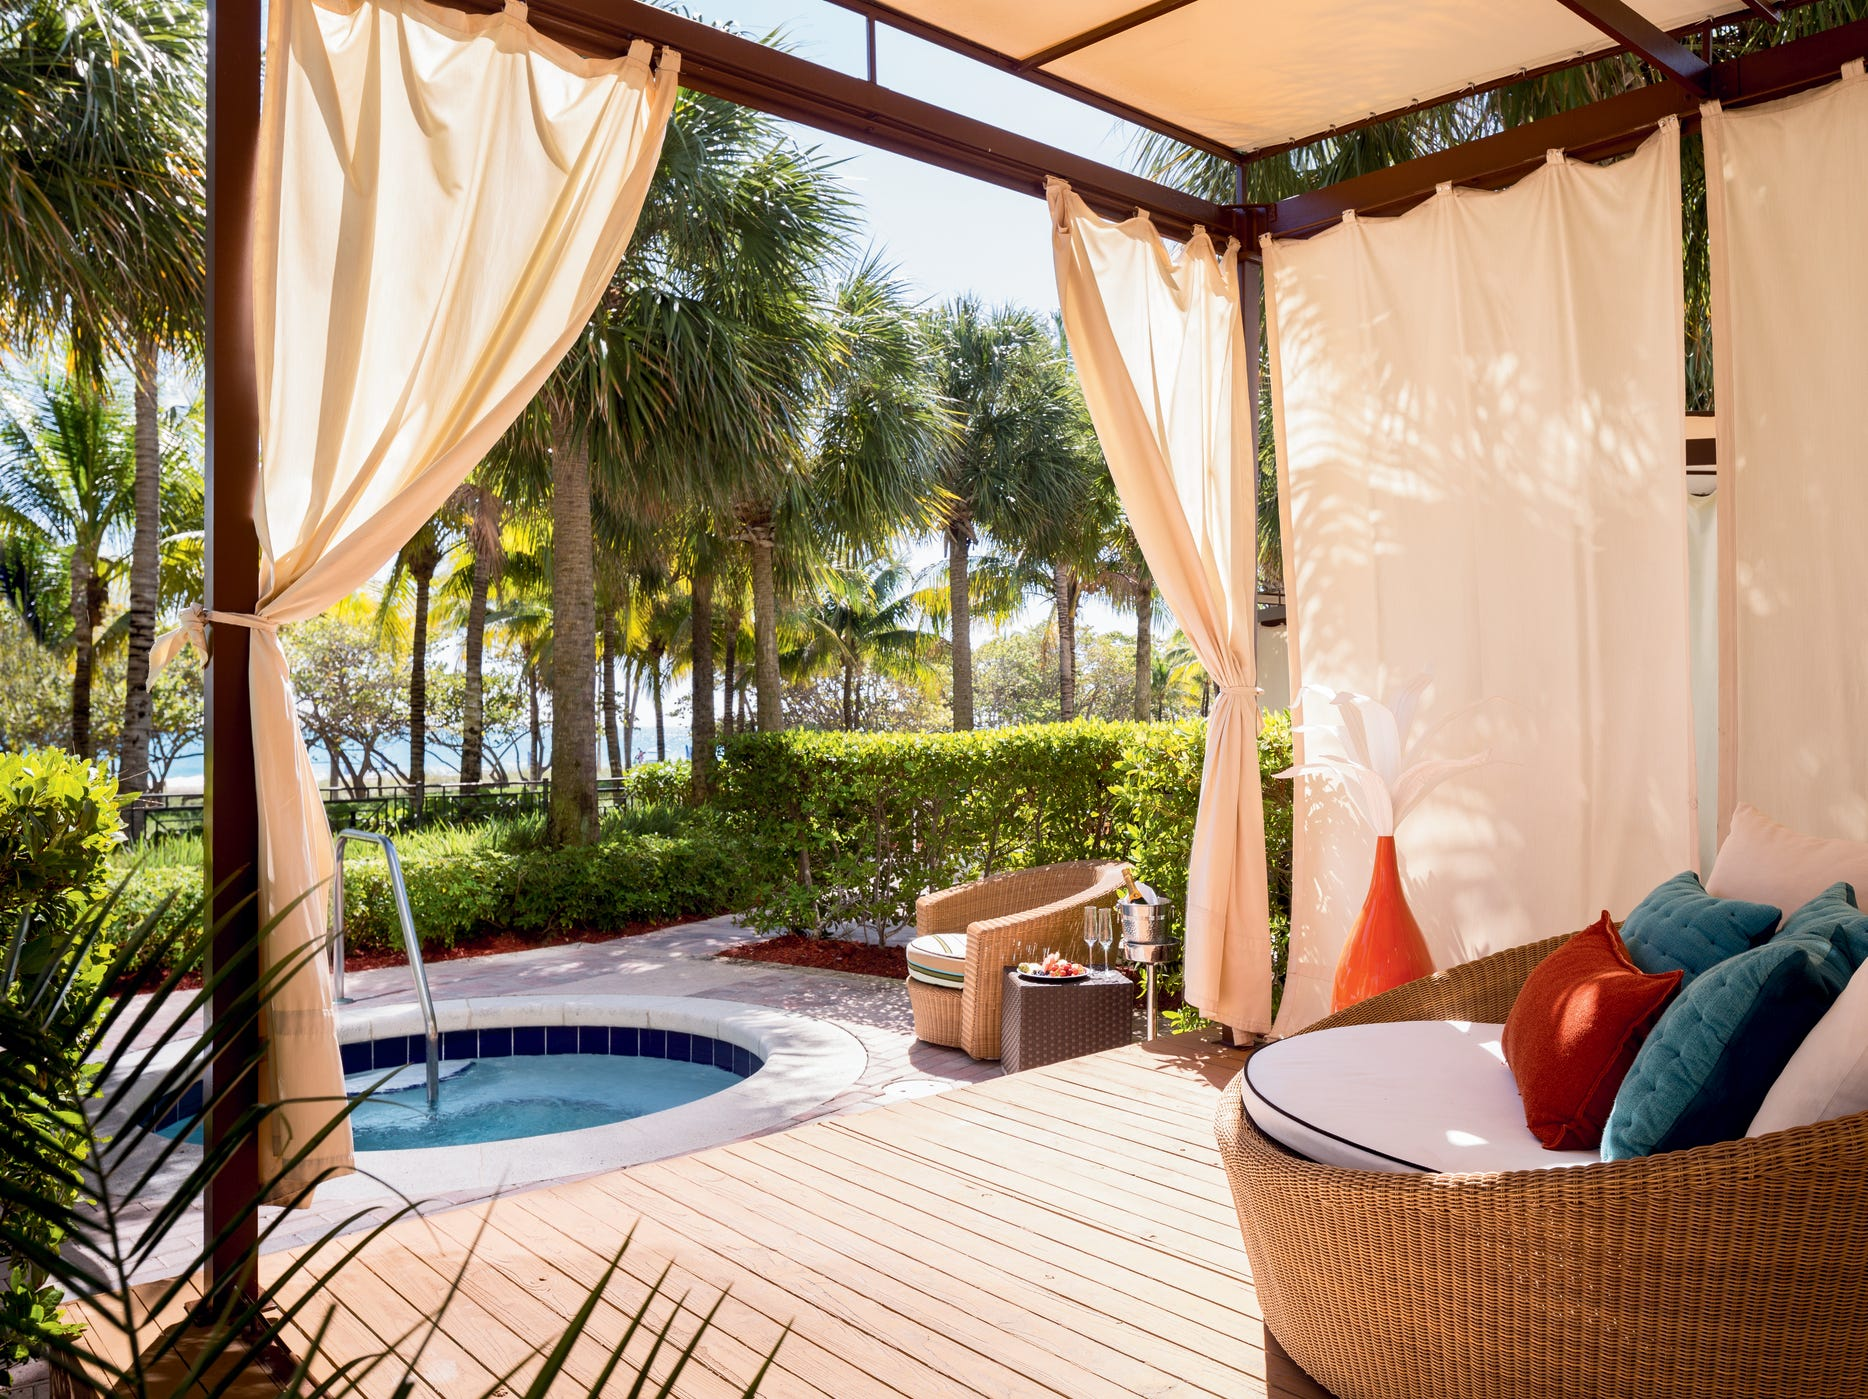 The cabanas at the swank Ritz-Carlton Bal Harbour Miami come with a private hot tub and a personal concierge. Prices start at $350 for the day.